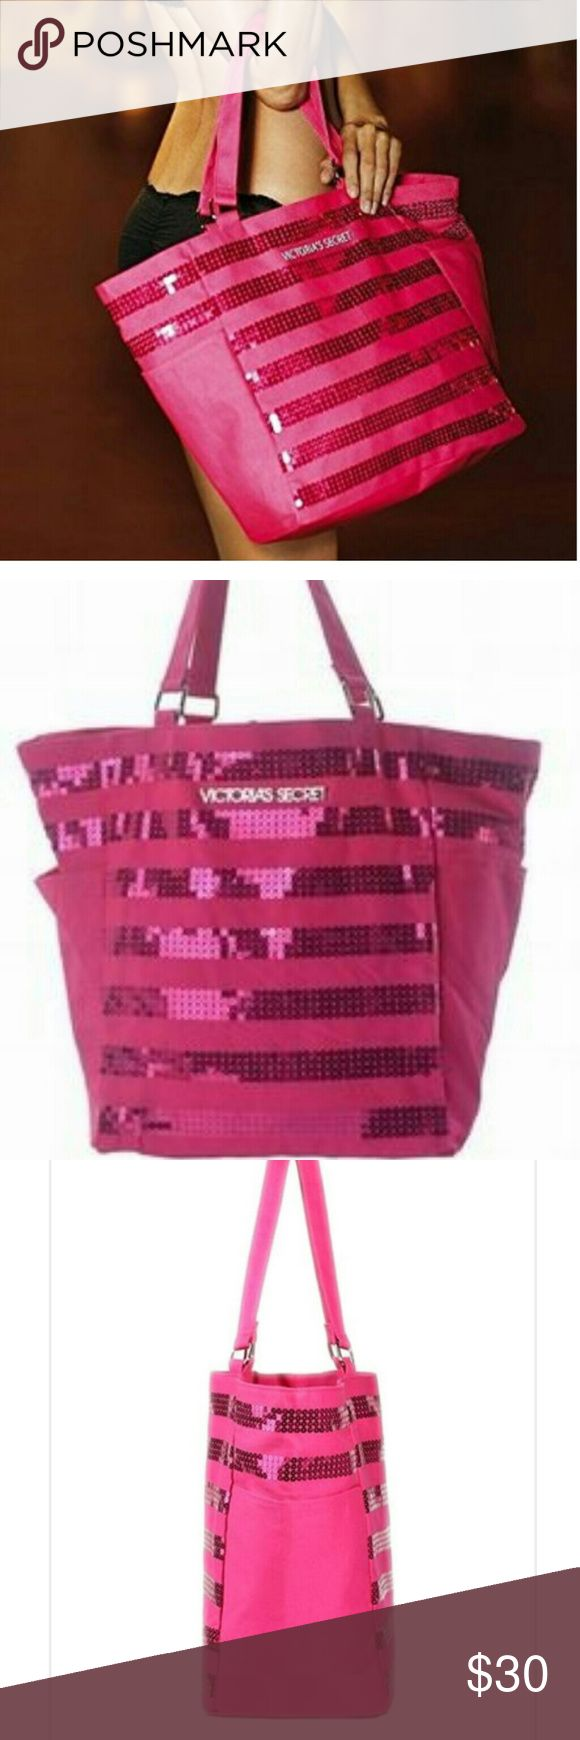 Victoria's Secret Tote Mint condition limited edition Black Friday 2012 Victoria's Secret sequin tote. Victoria's Secret Bags Totes